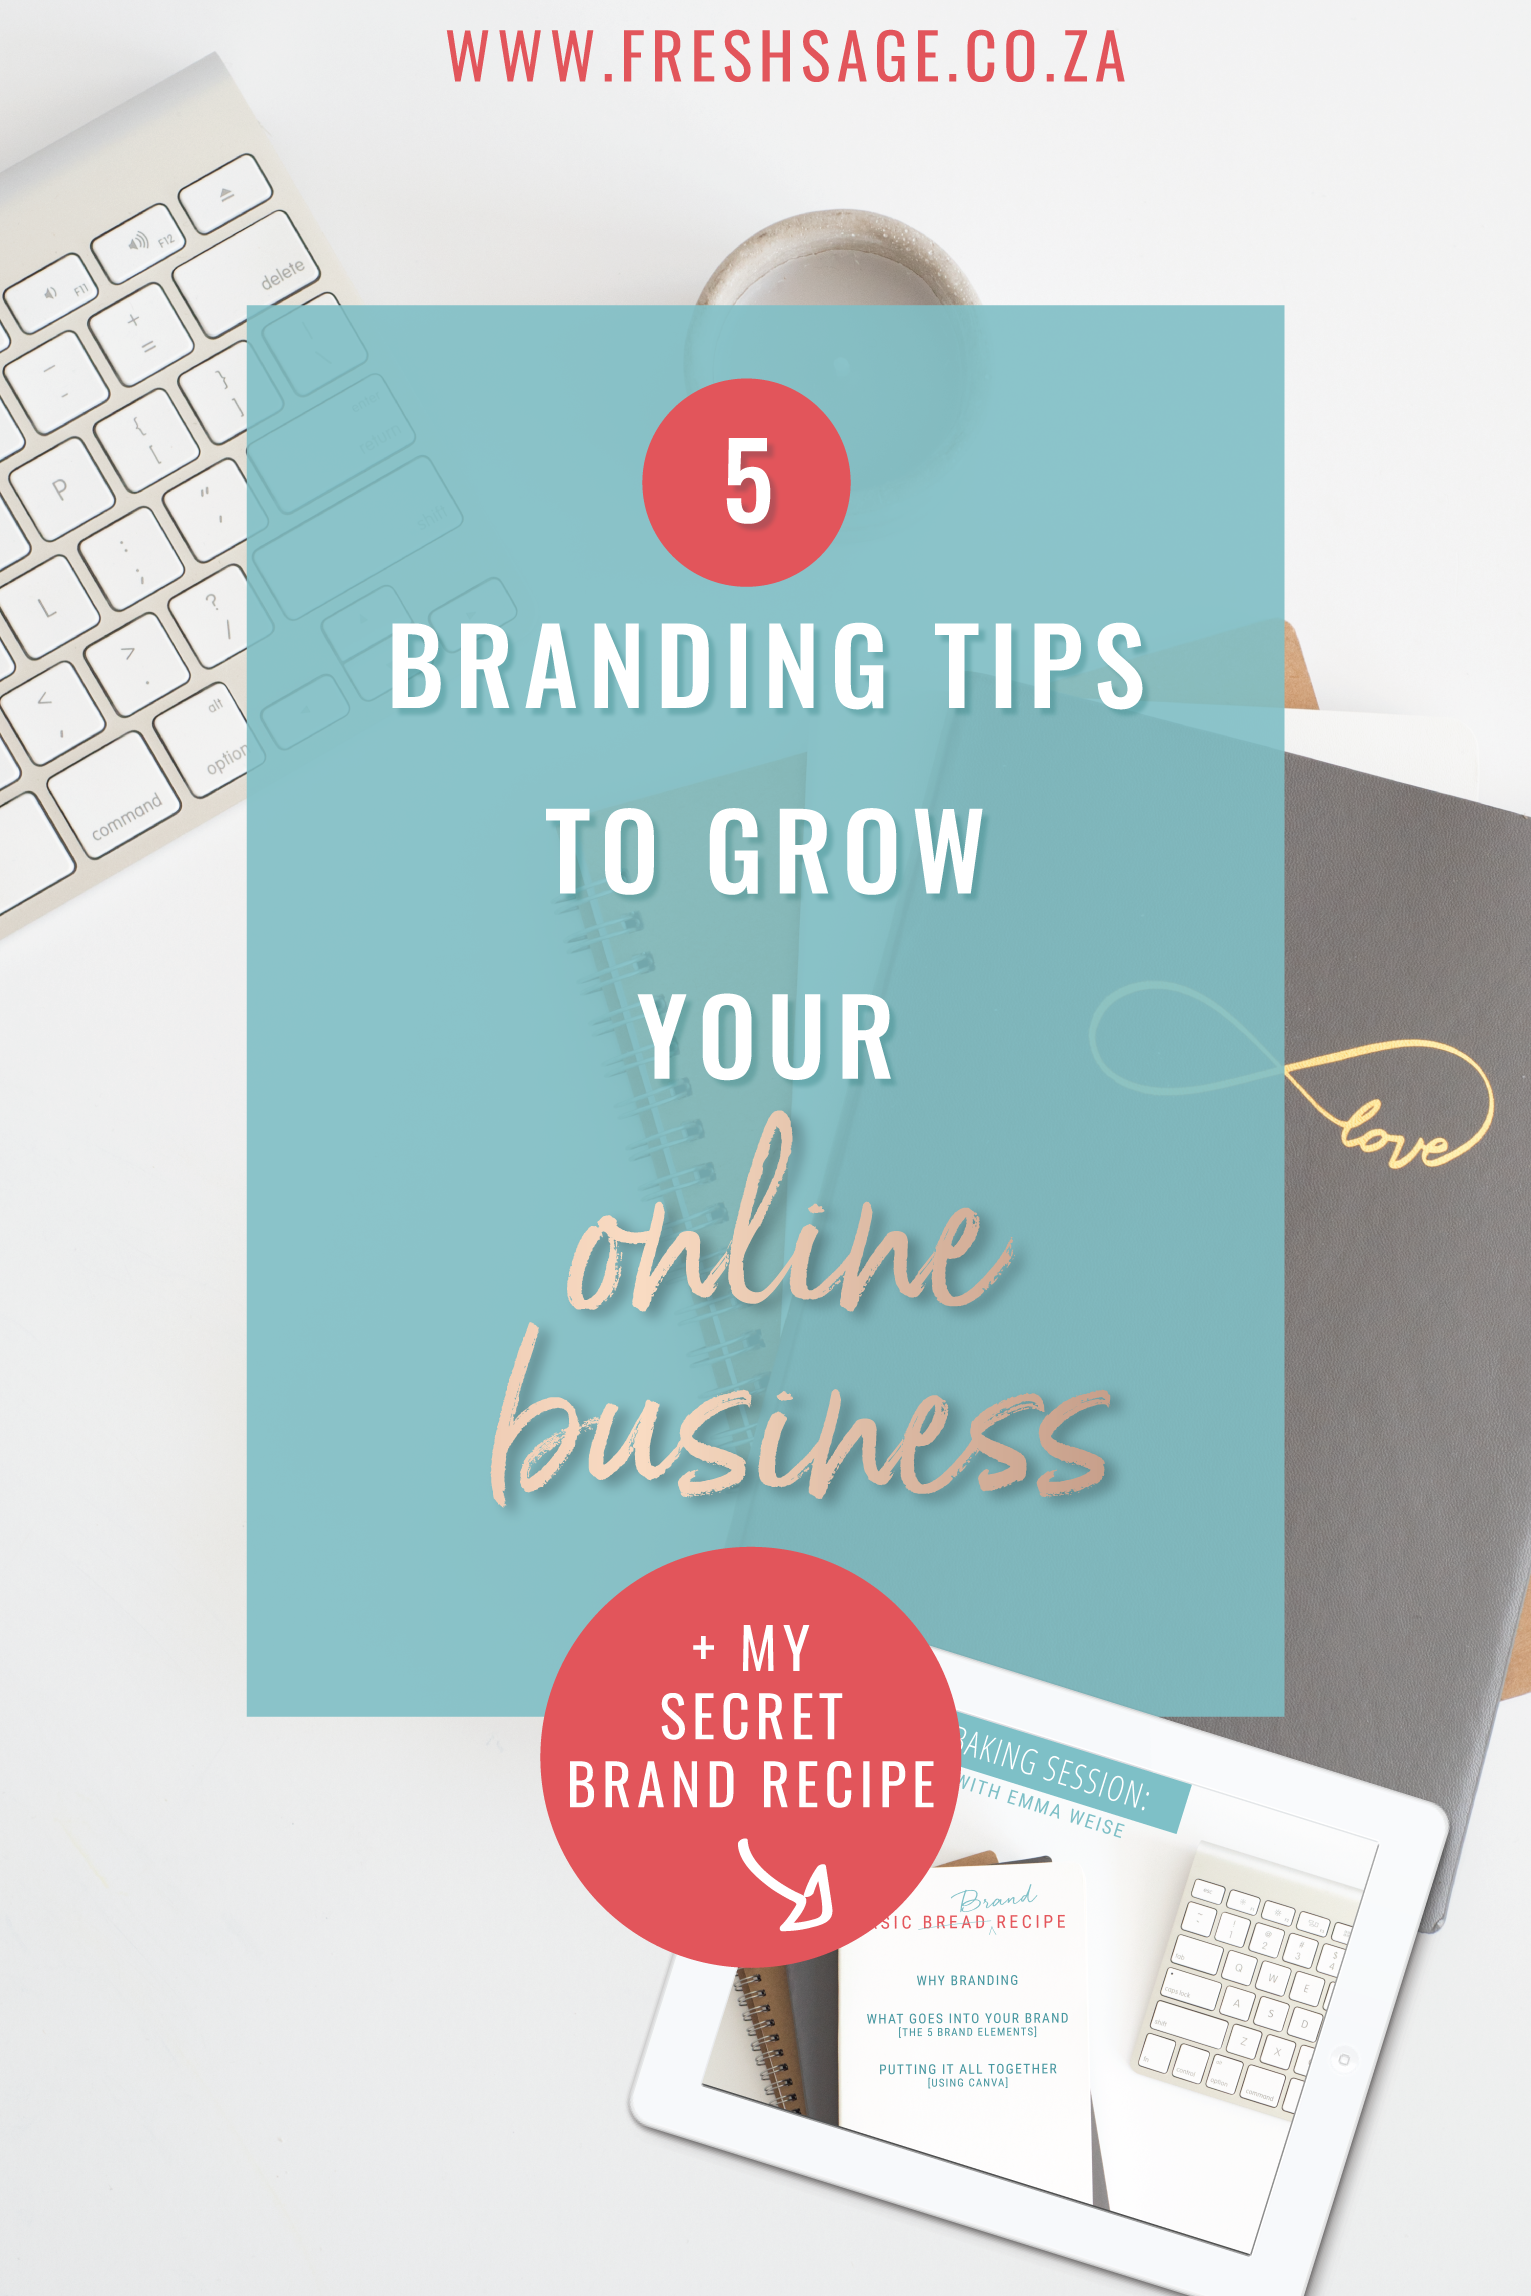 5 branding tips to grow your online business @FreshSageSA